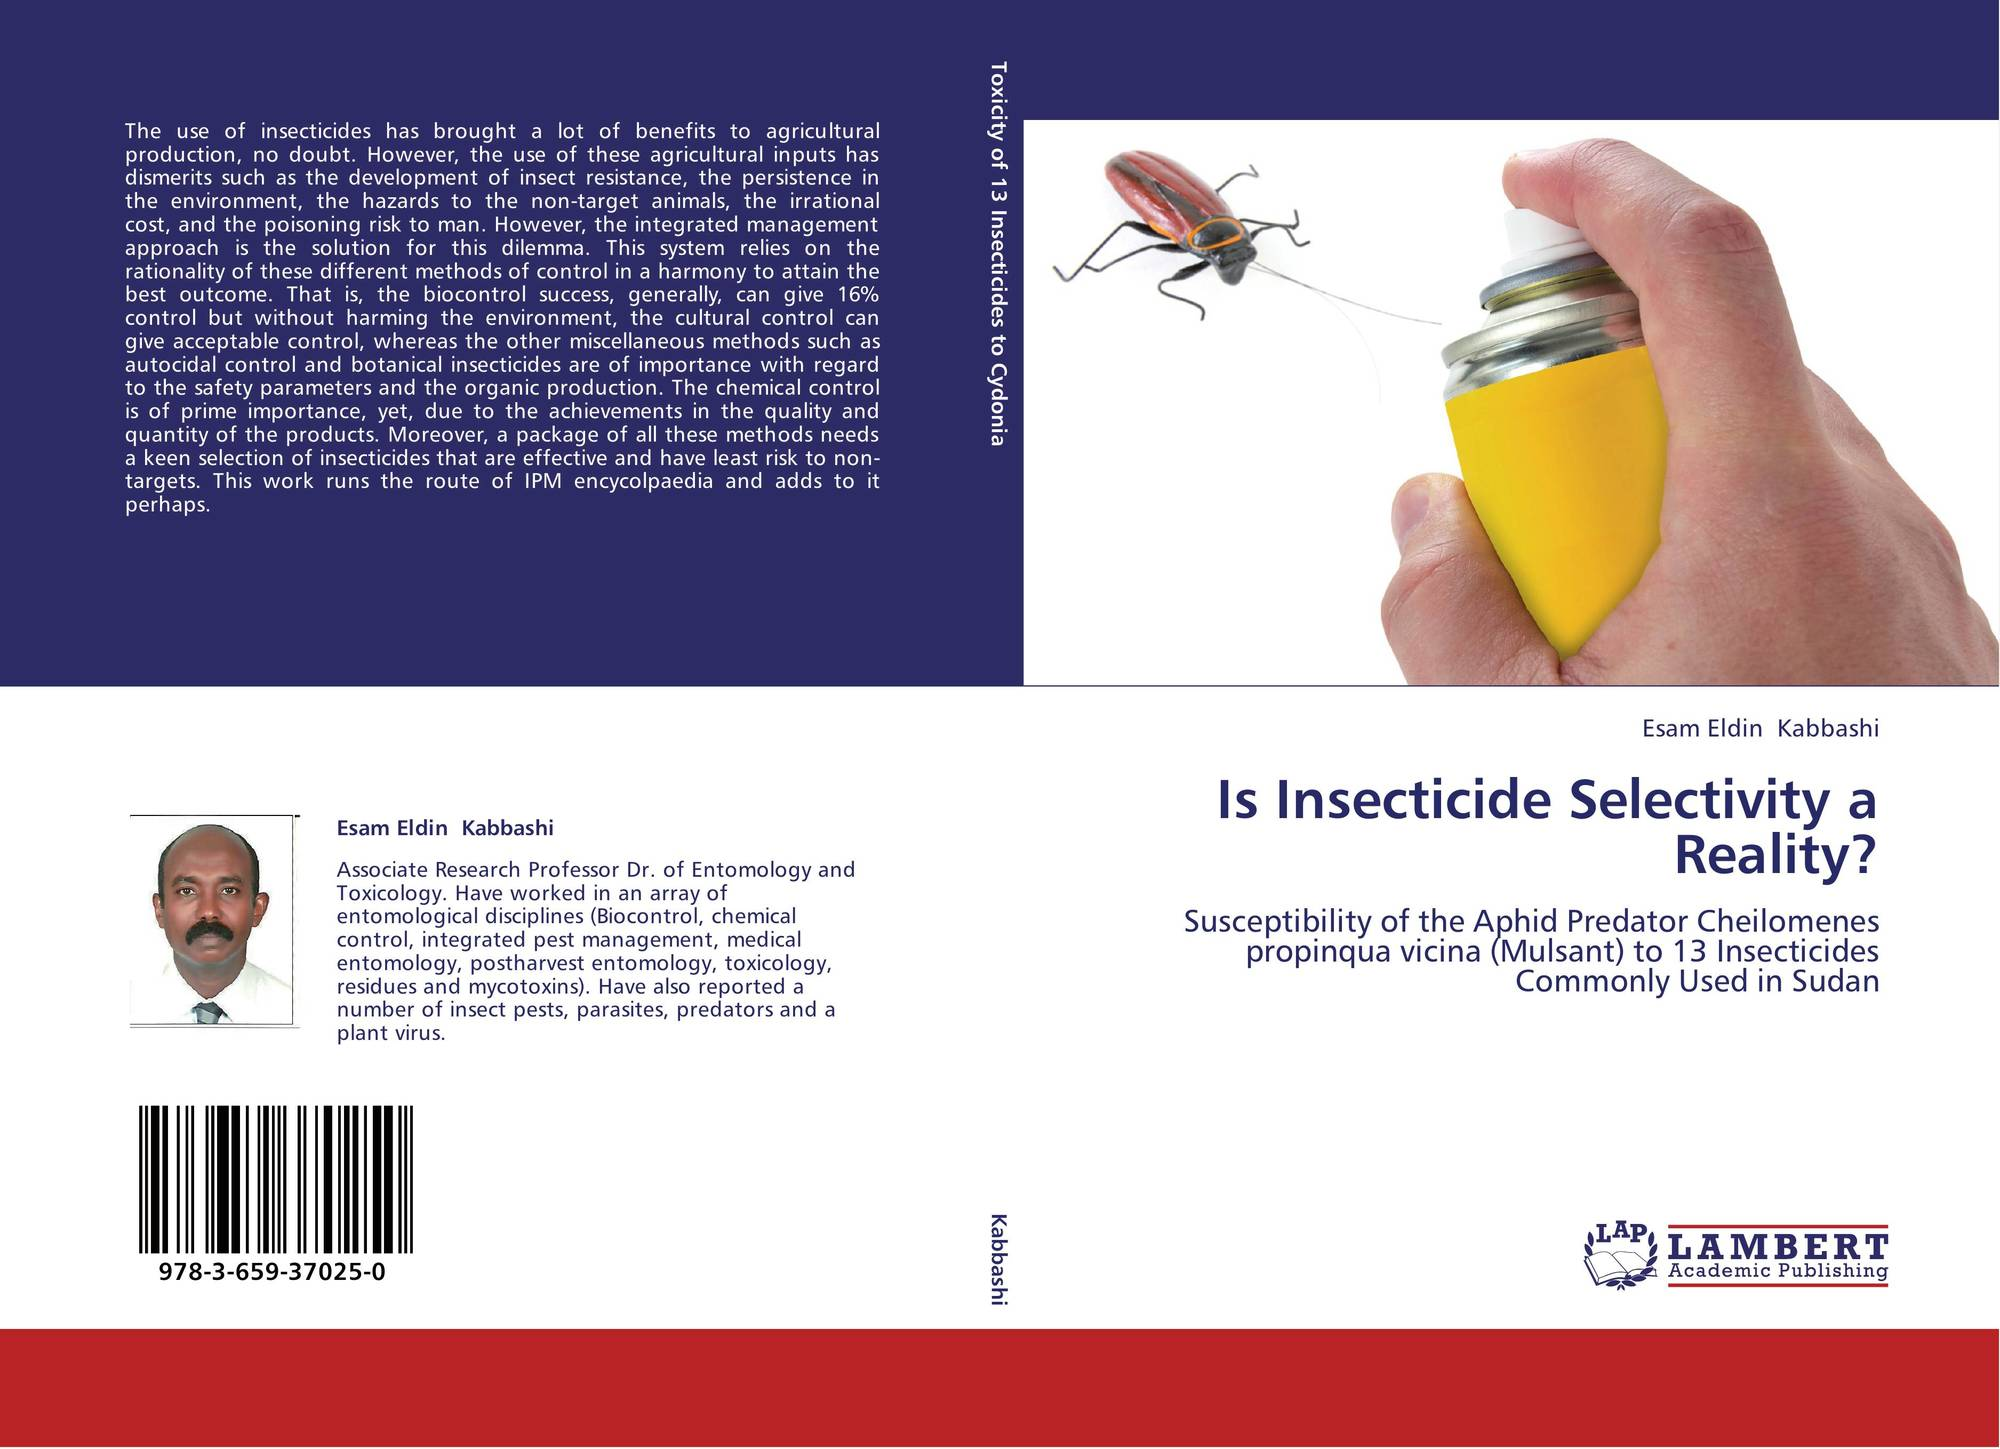 the features of insecticides and its importance Insecticides one of the most important advances in the control of insects during this century was the development of insecticides that remain active over extended periods the first insecticide with such long-lasting or residual properties, ddt, was developed.